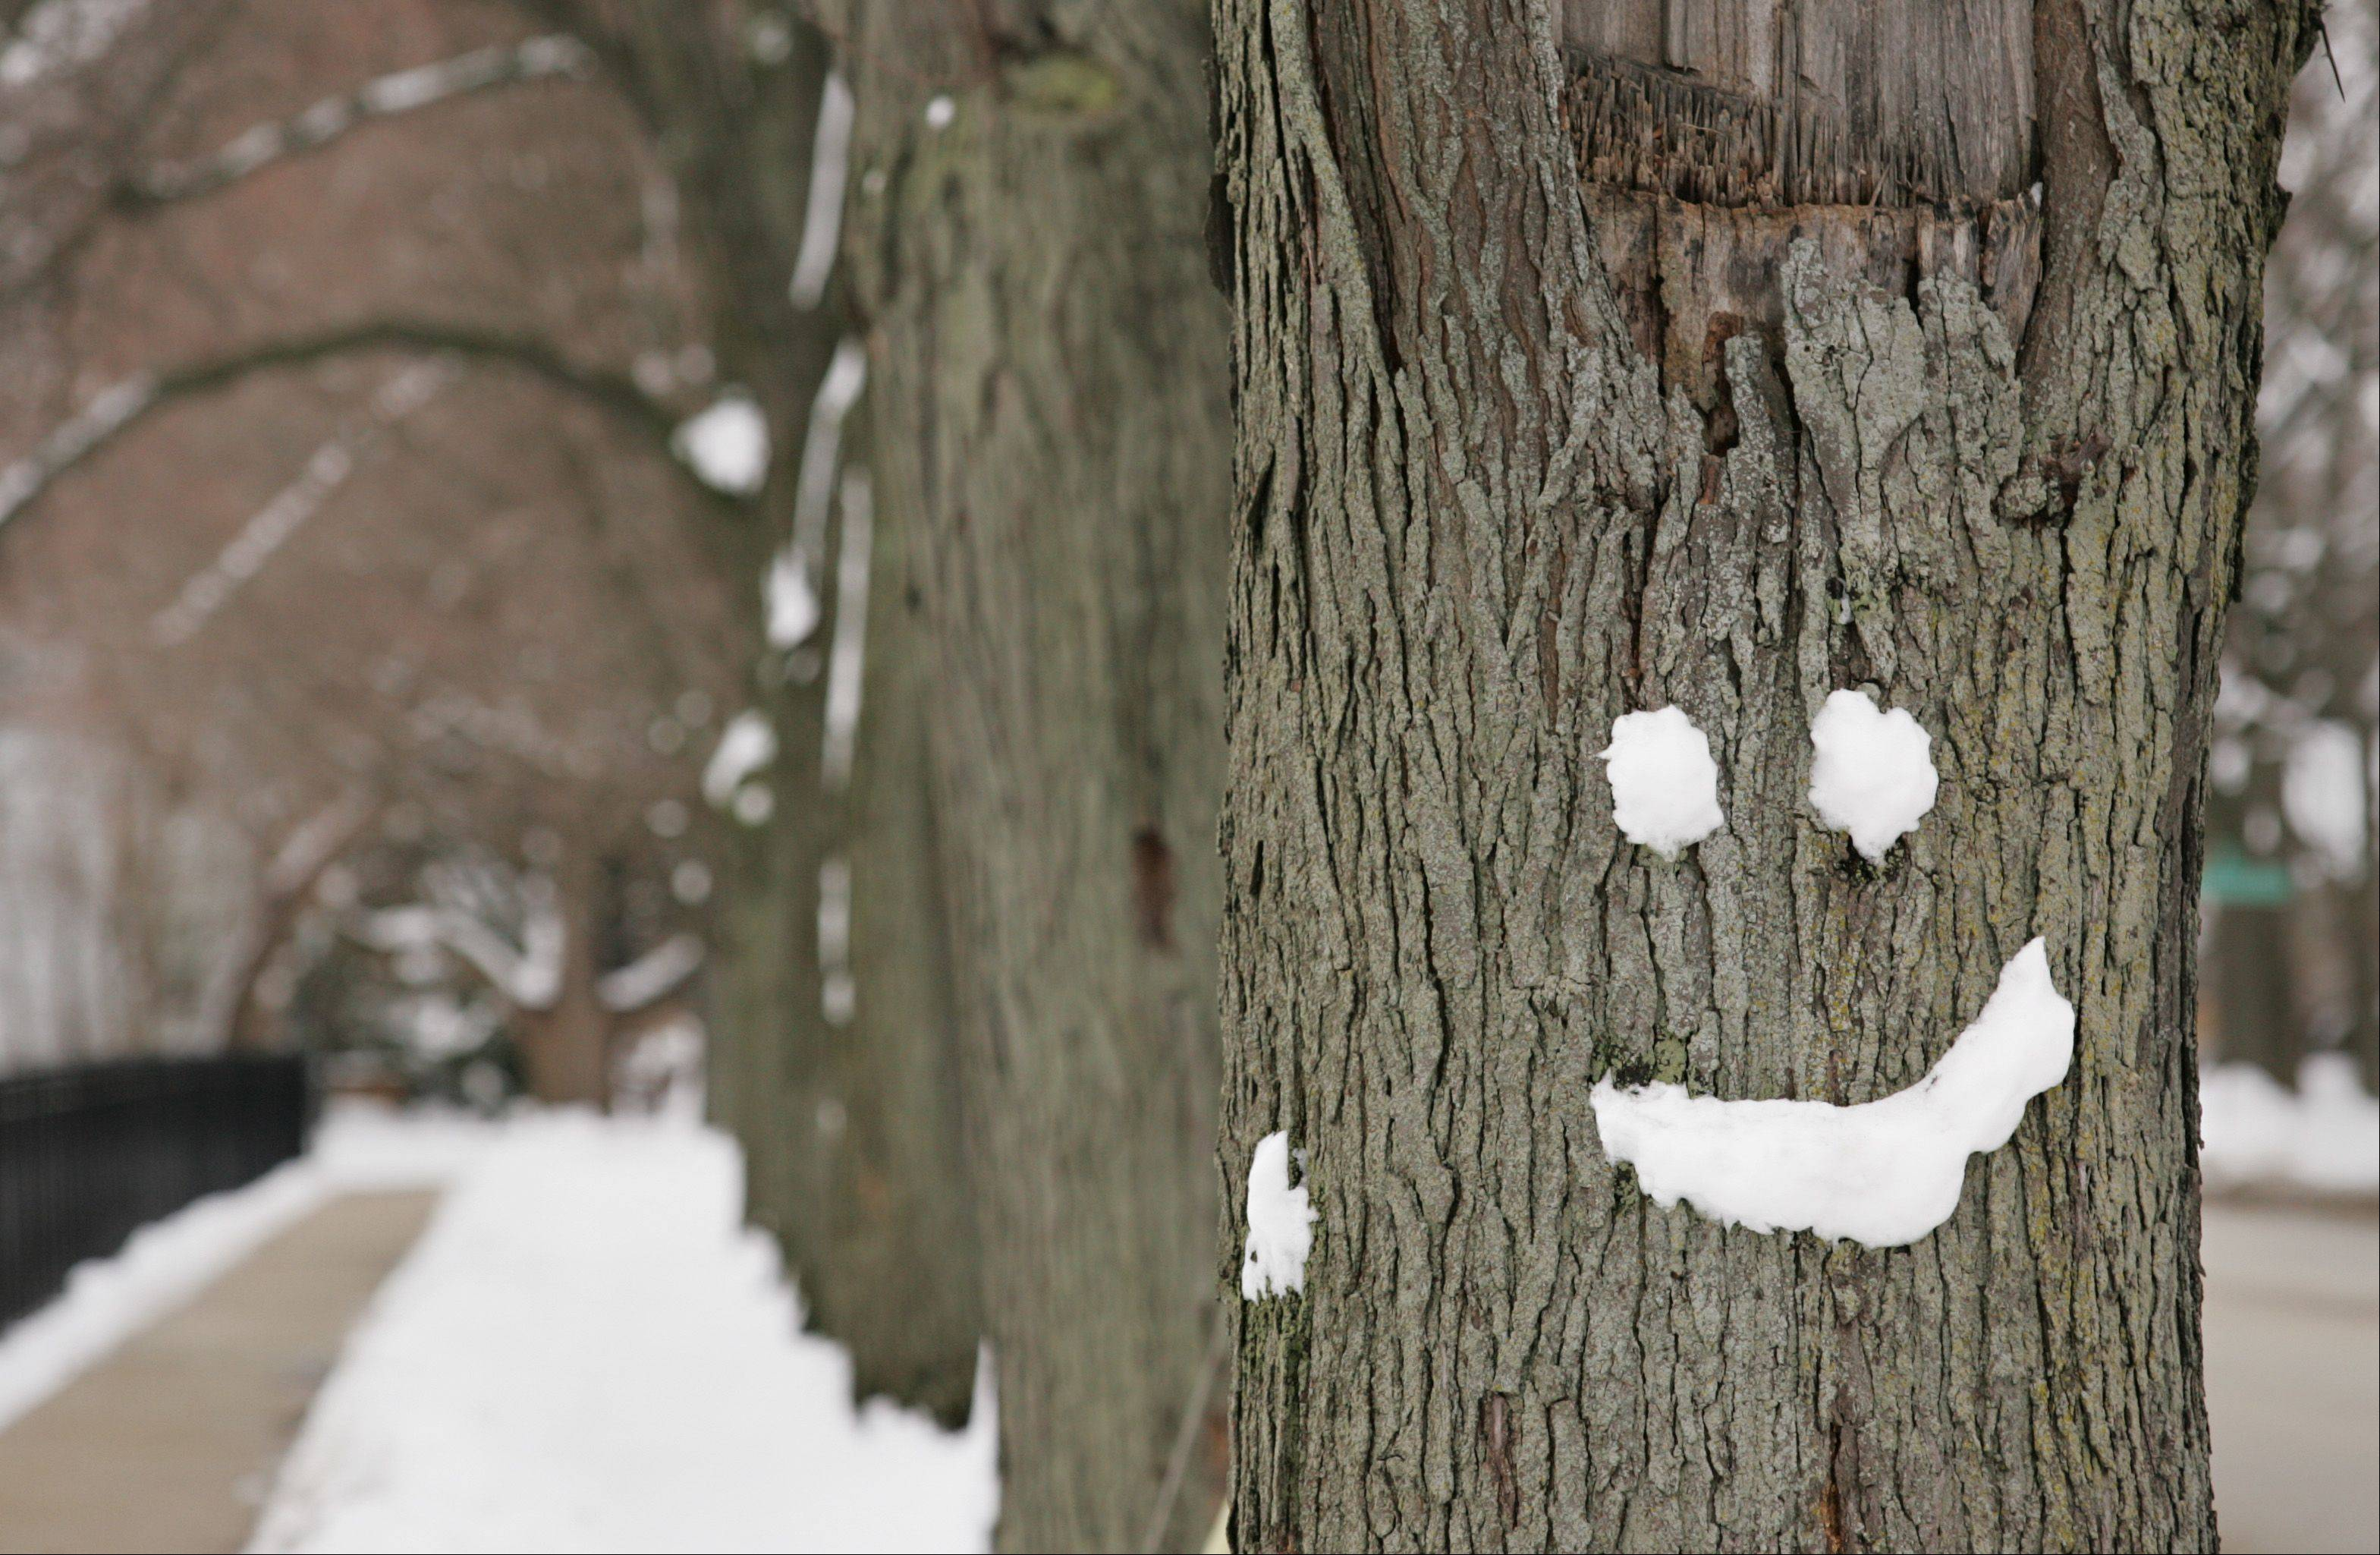 Wet and snowy conditions last February created a perfect opportunity for a budding artist to adorn this tree with a smile along Wing Street in Elgin.